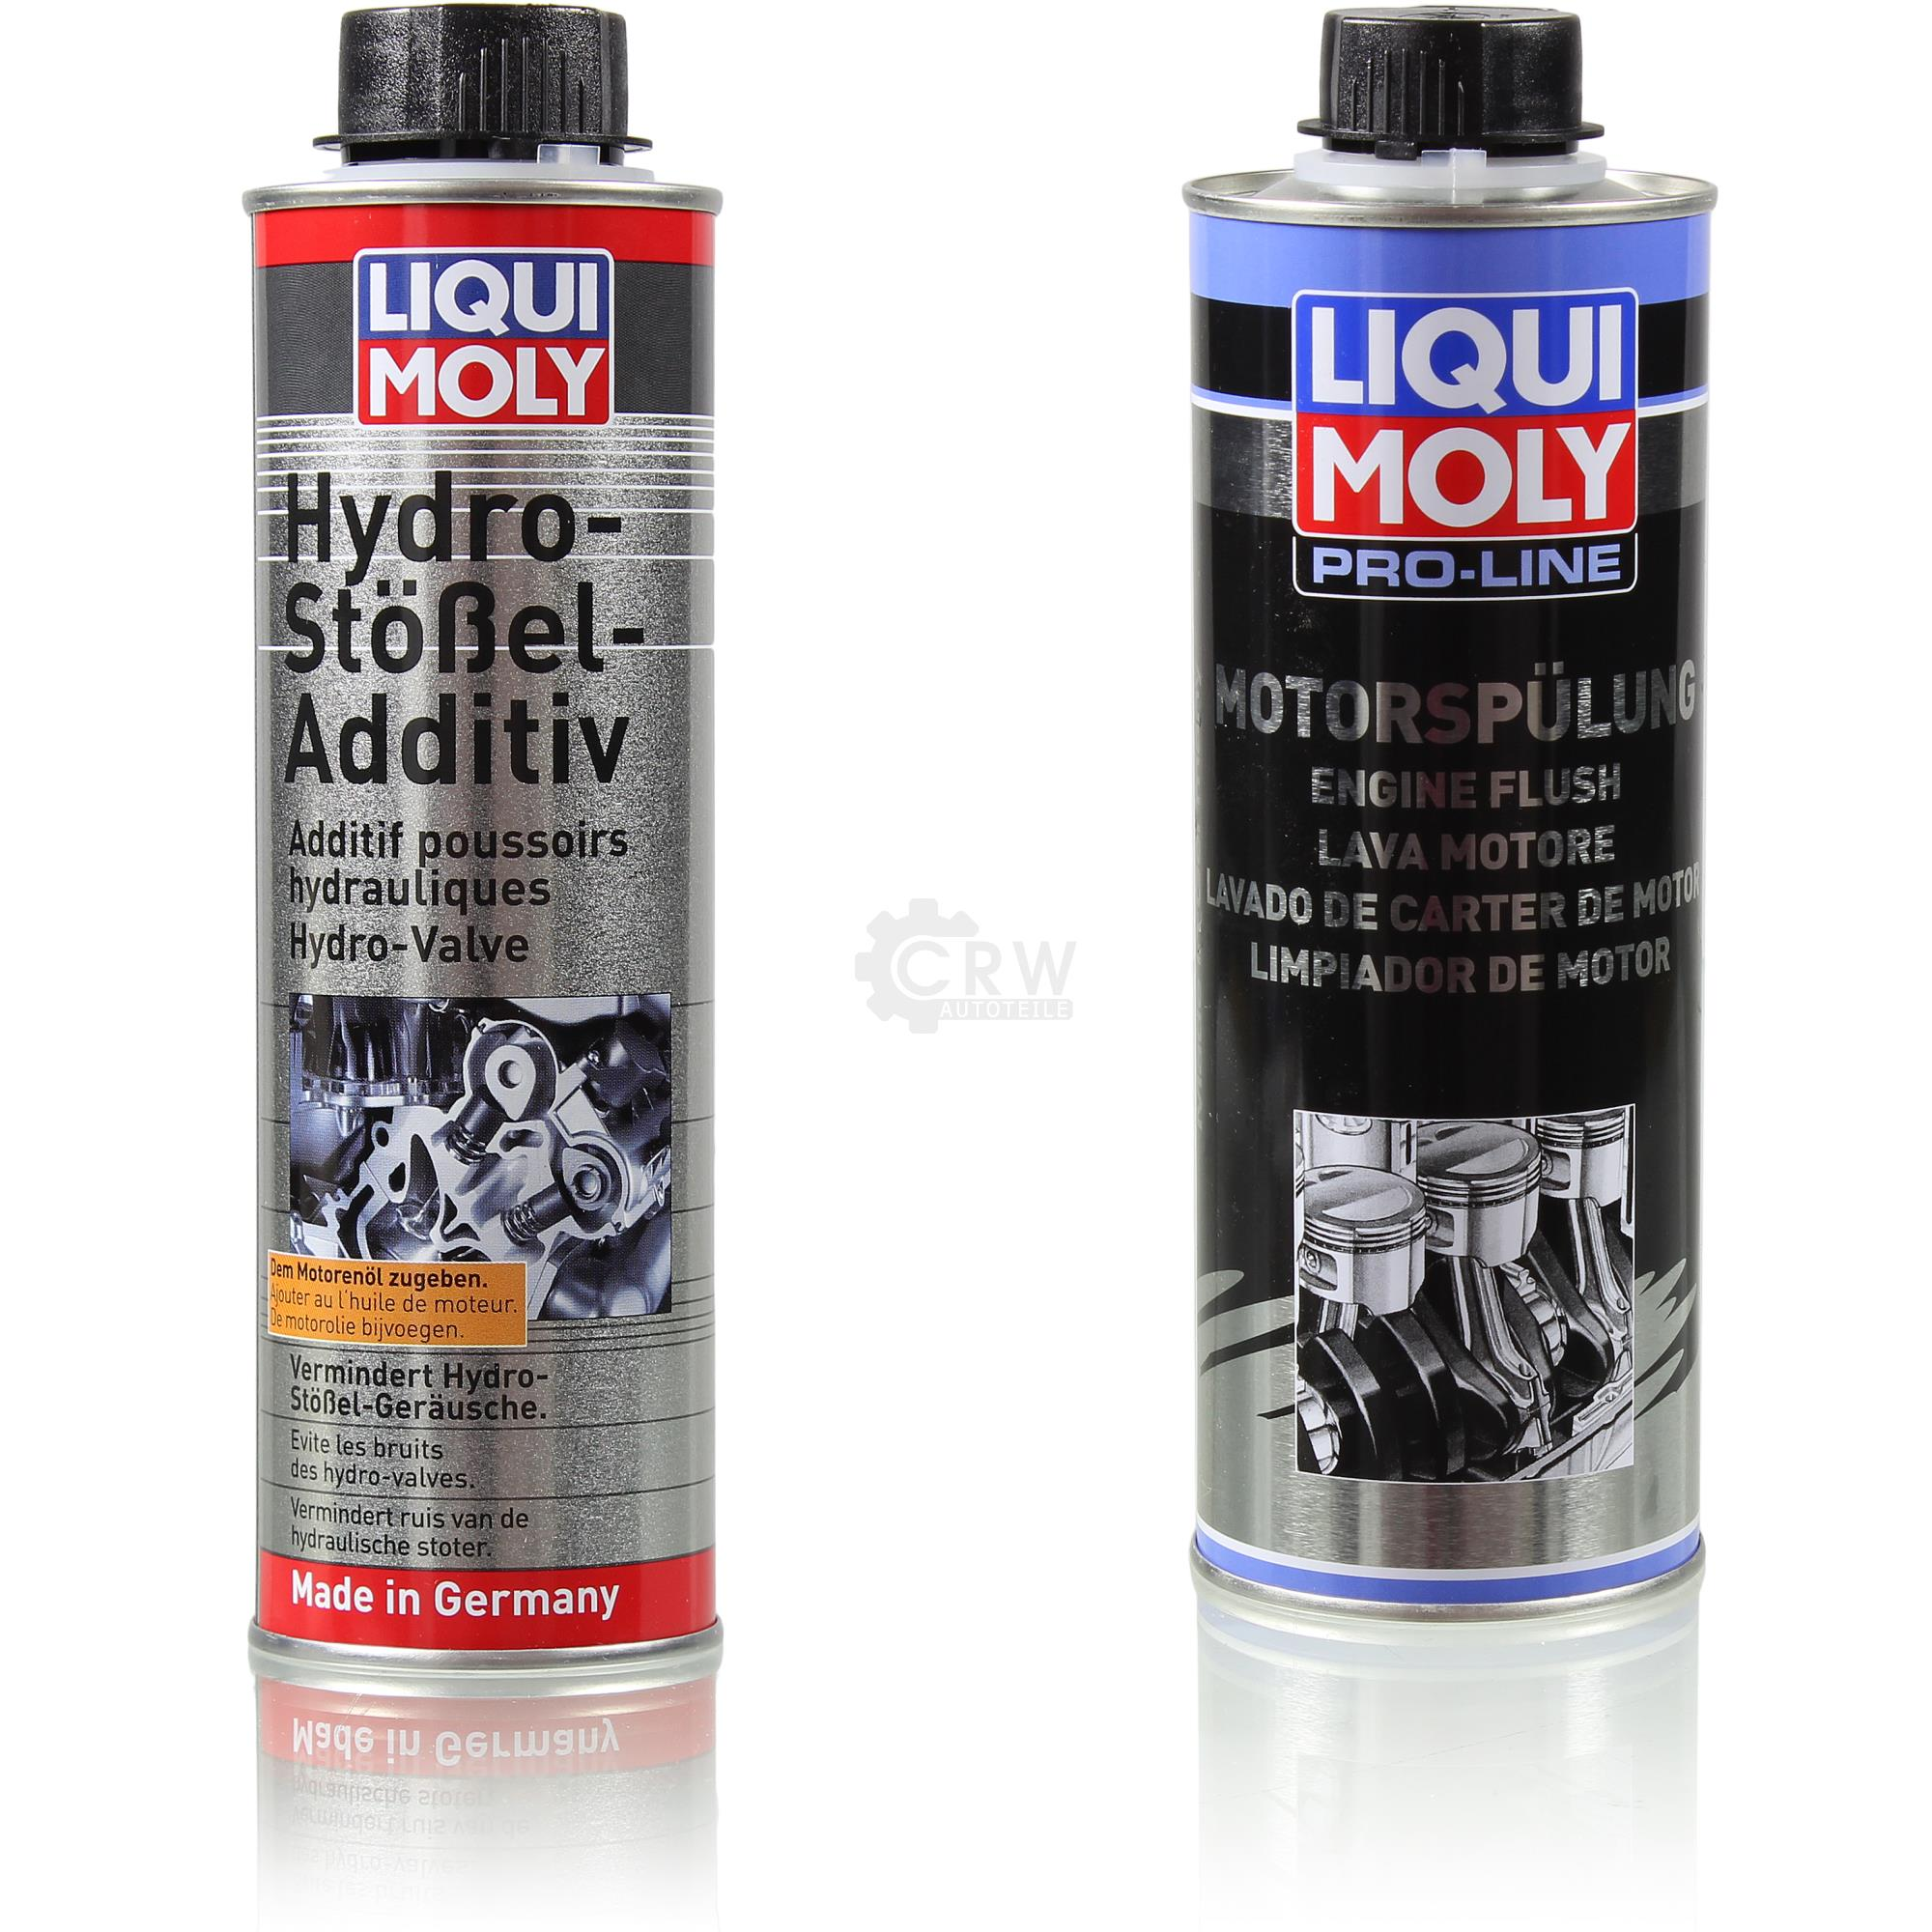 original liqui moly set hydro st el additiv und pro line. Black Bedroom Furniture Sets. Home Design Ideas